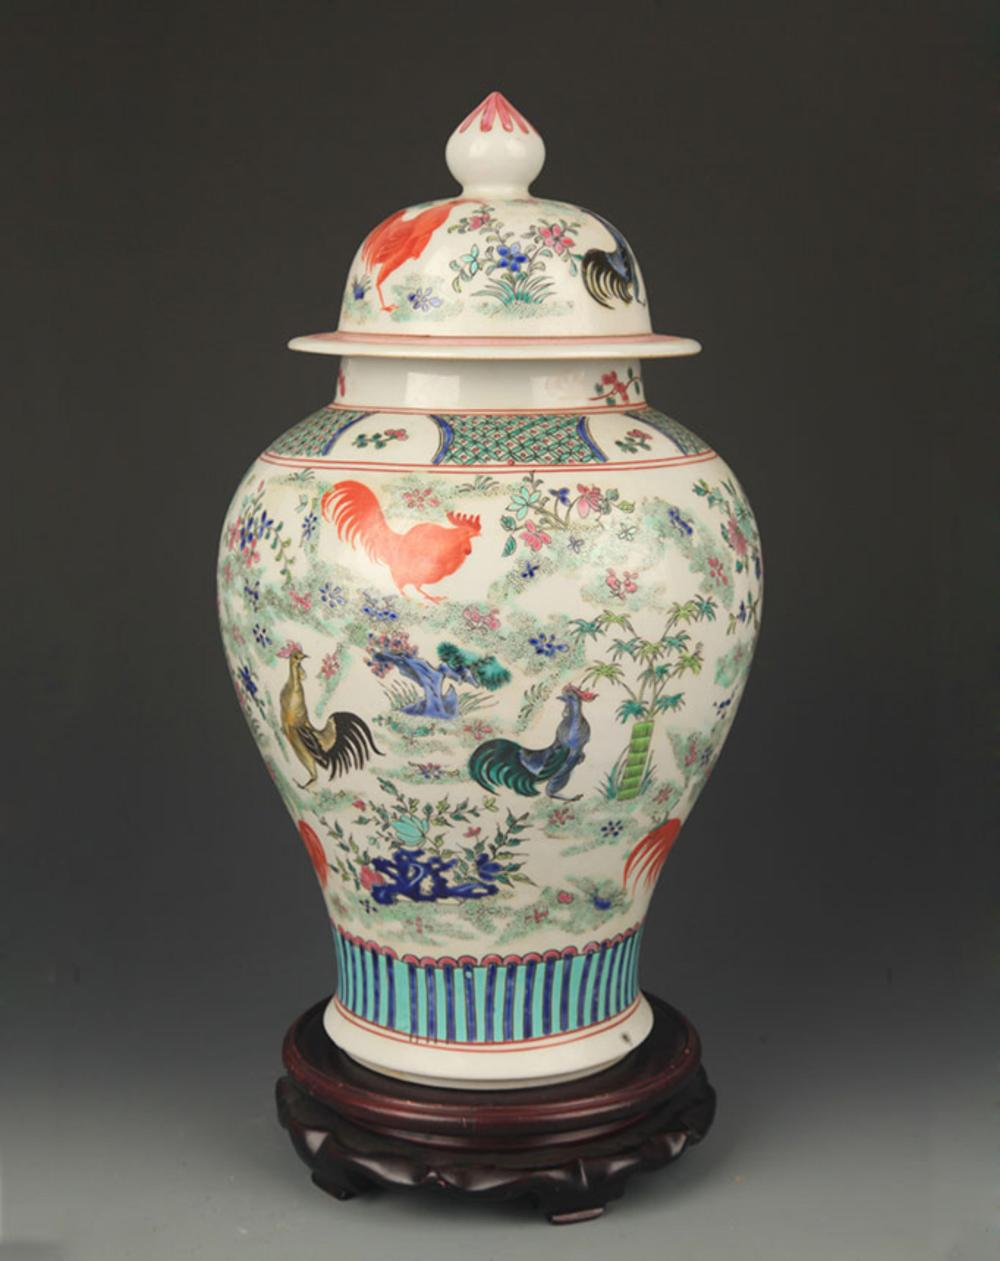 A FAMILLE ROSE CHICKEN PATTERN GENERAL TYPE JAR